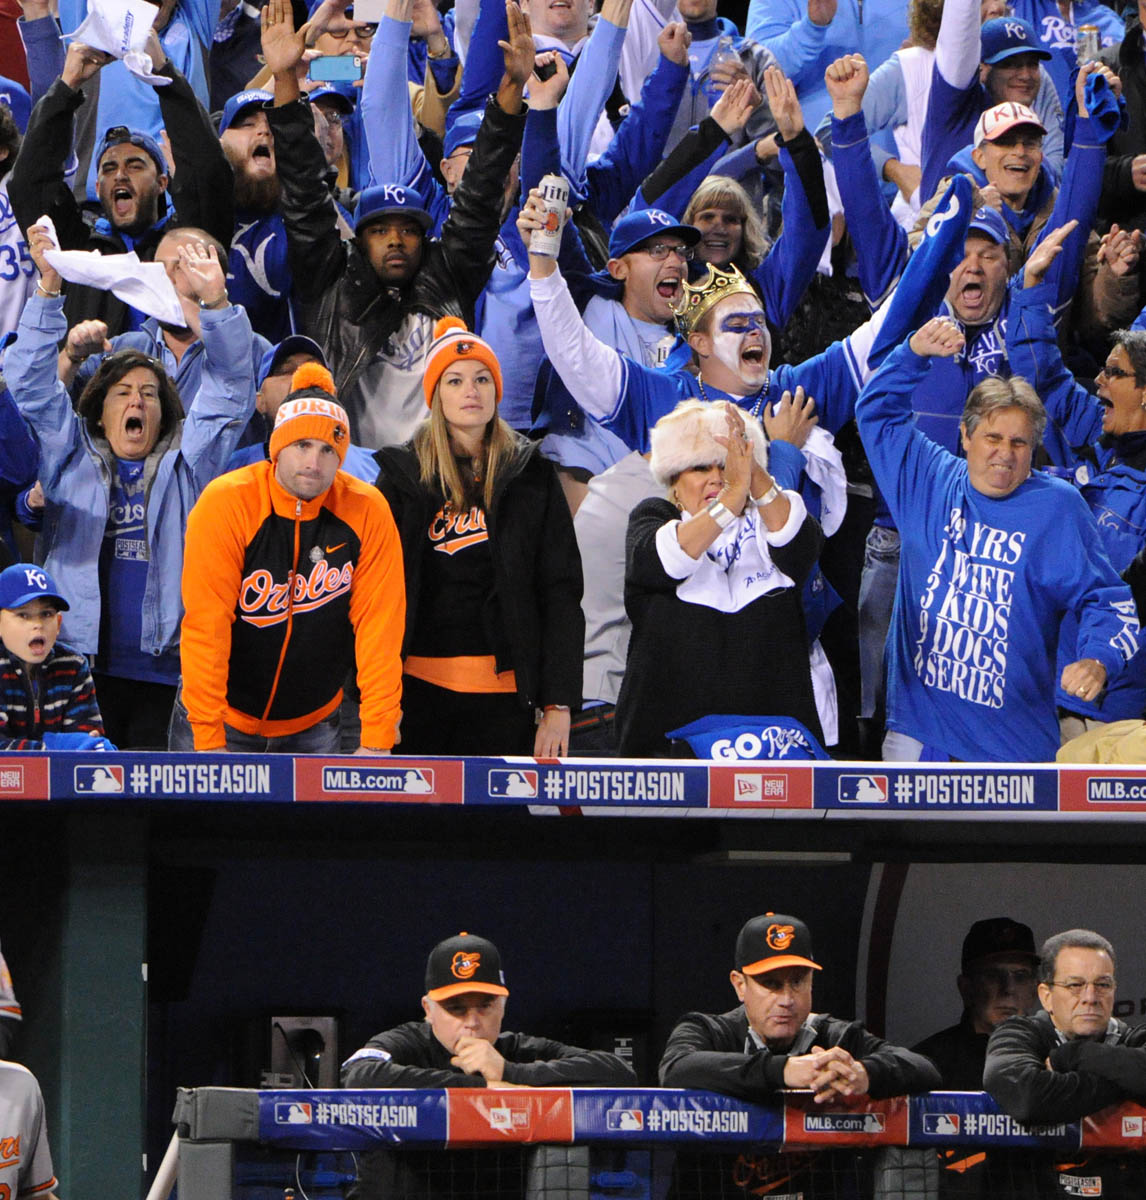 Rough Cut: Kansas City Royals defeat Baltimore Orioles in ALCS game 3